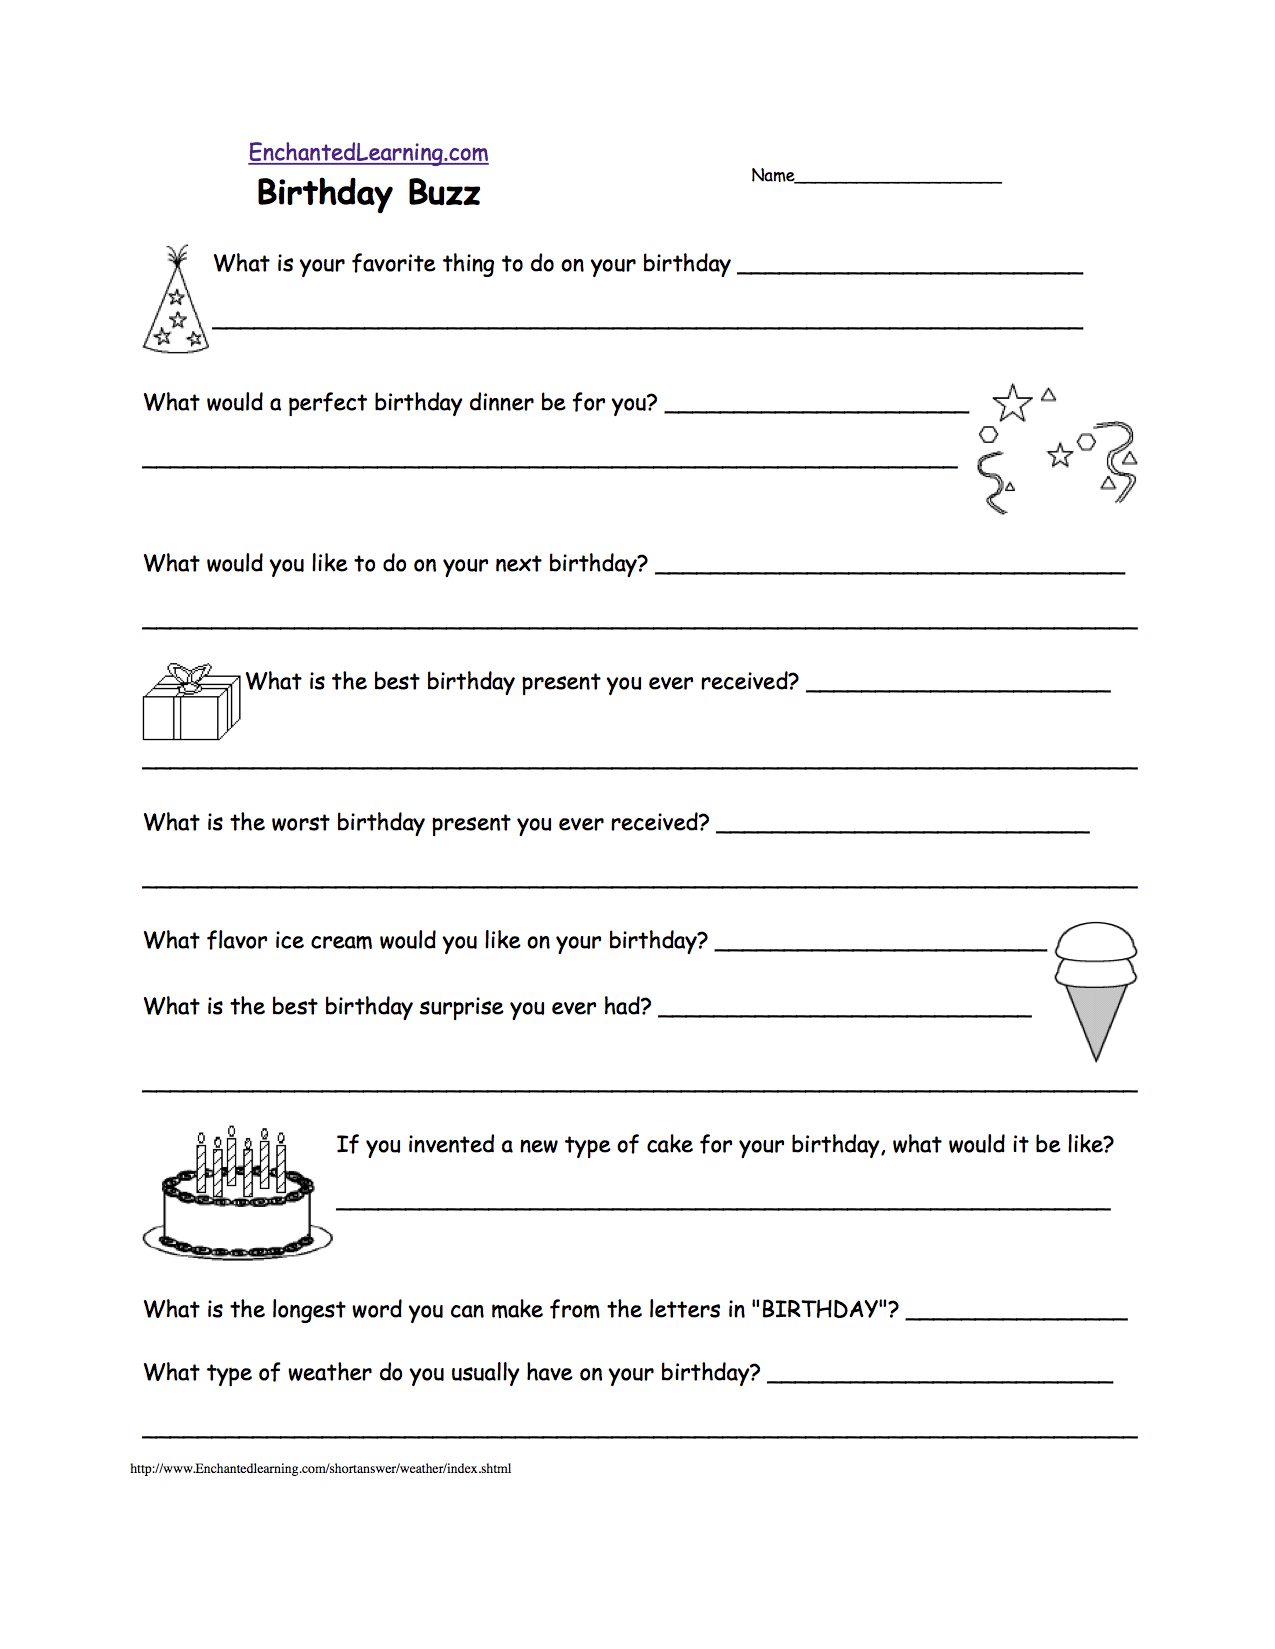 worksheet All About Me Worksheet For Adults short answer quizzes printable enchantedlearning com or go to the answers birthday